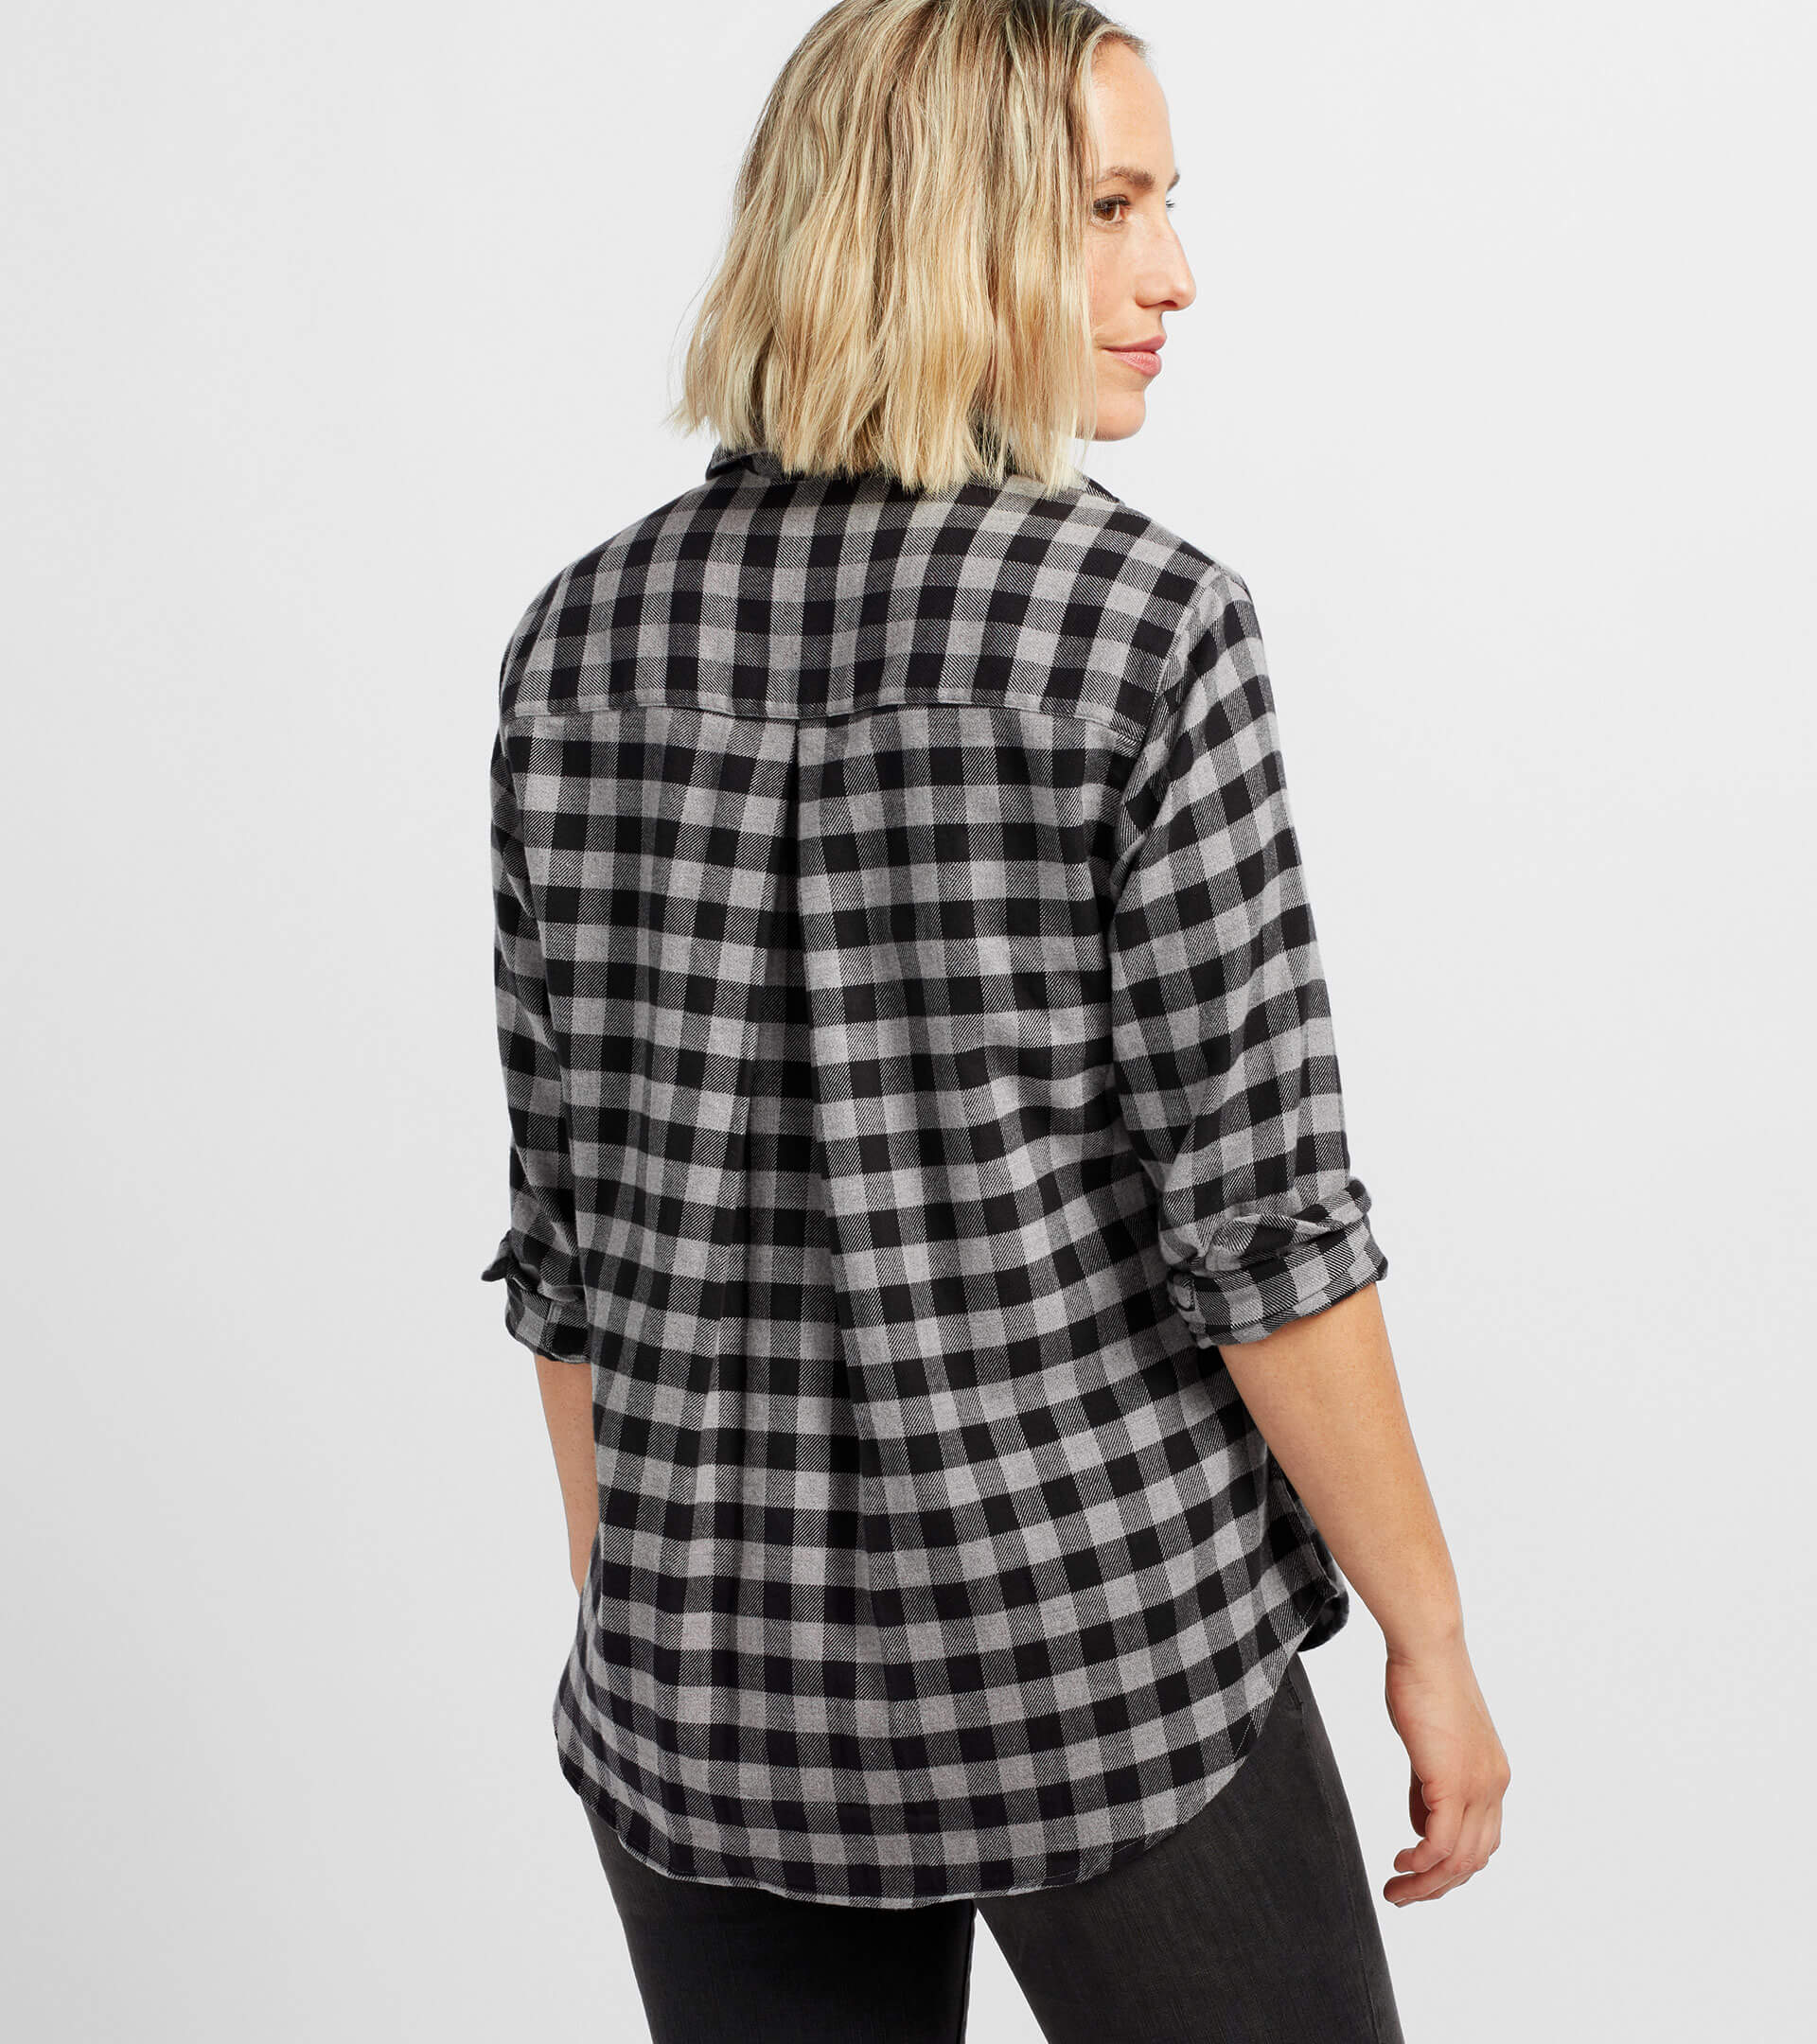 Image of The Hero Black and Gray Melange Check, Plush Flannel Sale